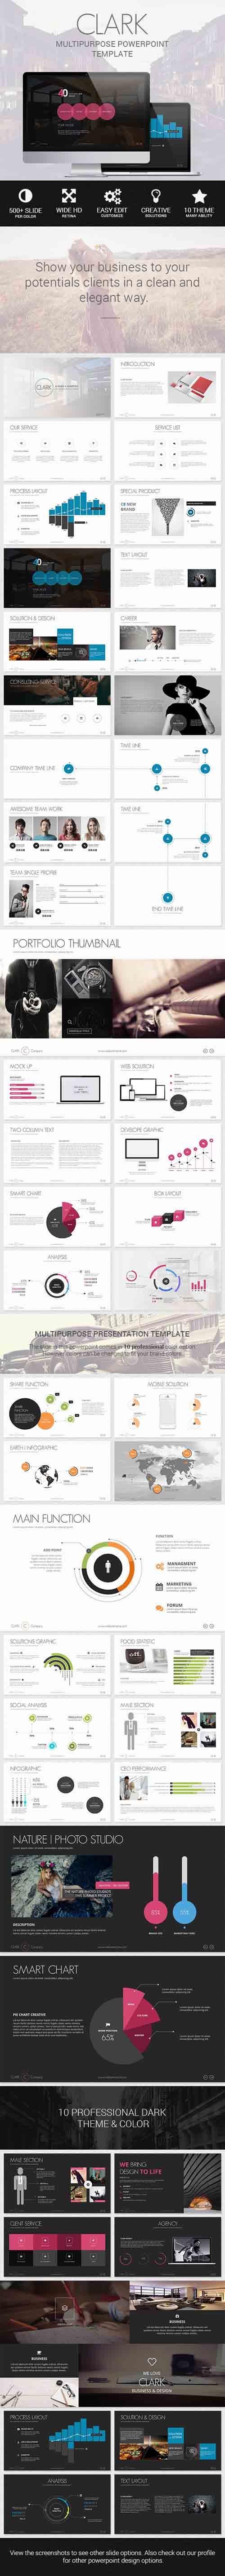 Clark - Business & Marketing Creative Template 8324349